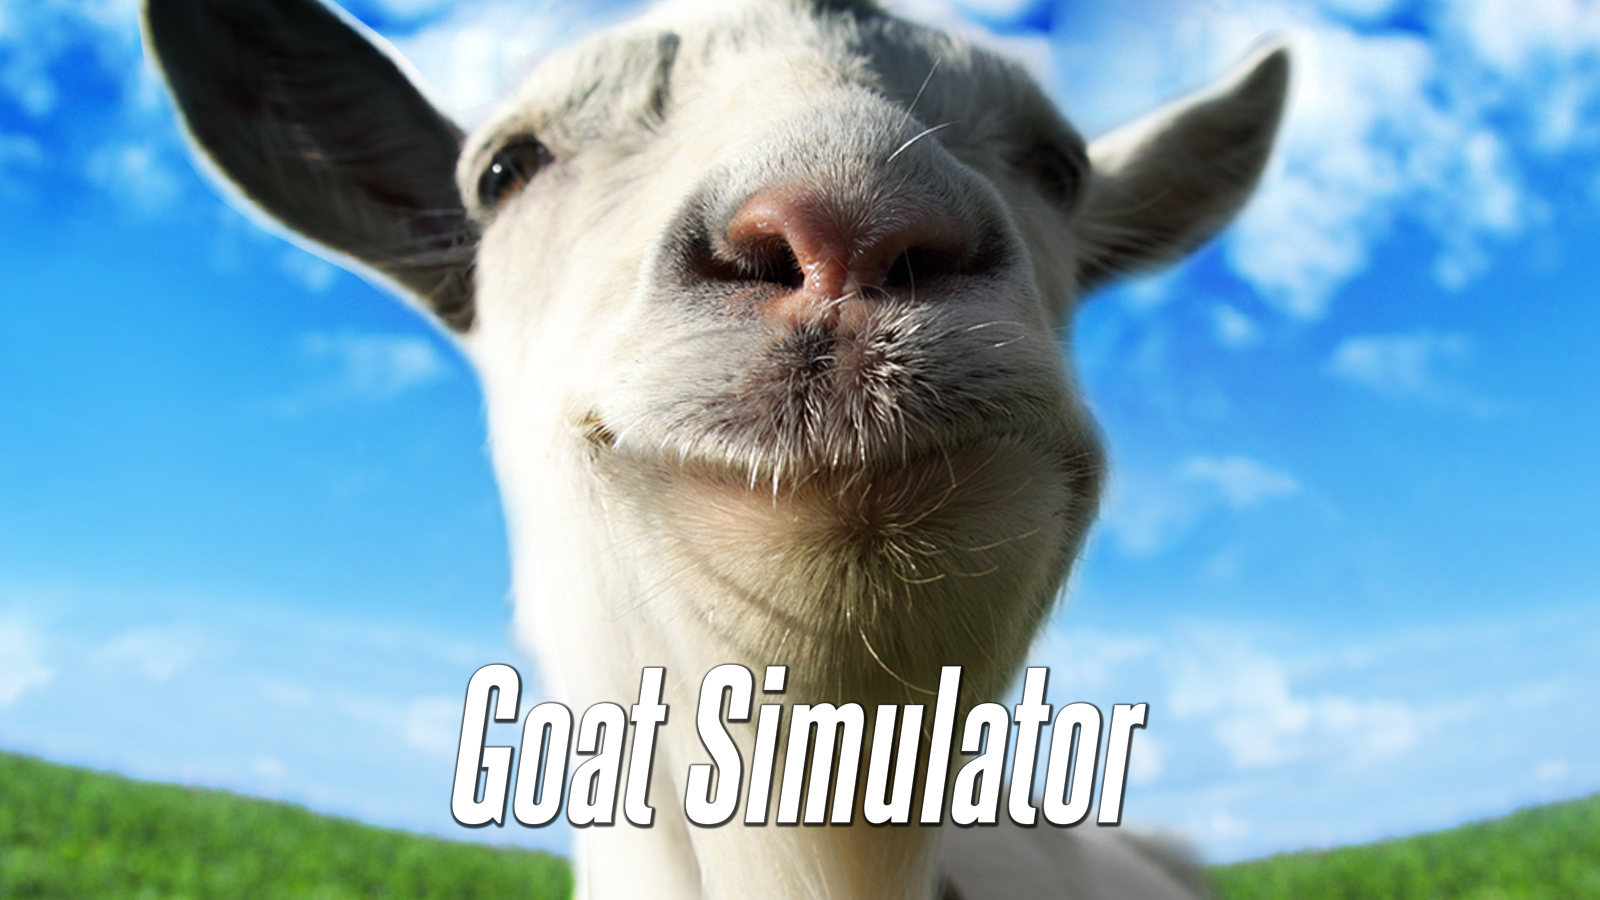 Get Goat Simulator, Simulation game for PS4™ console from